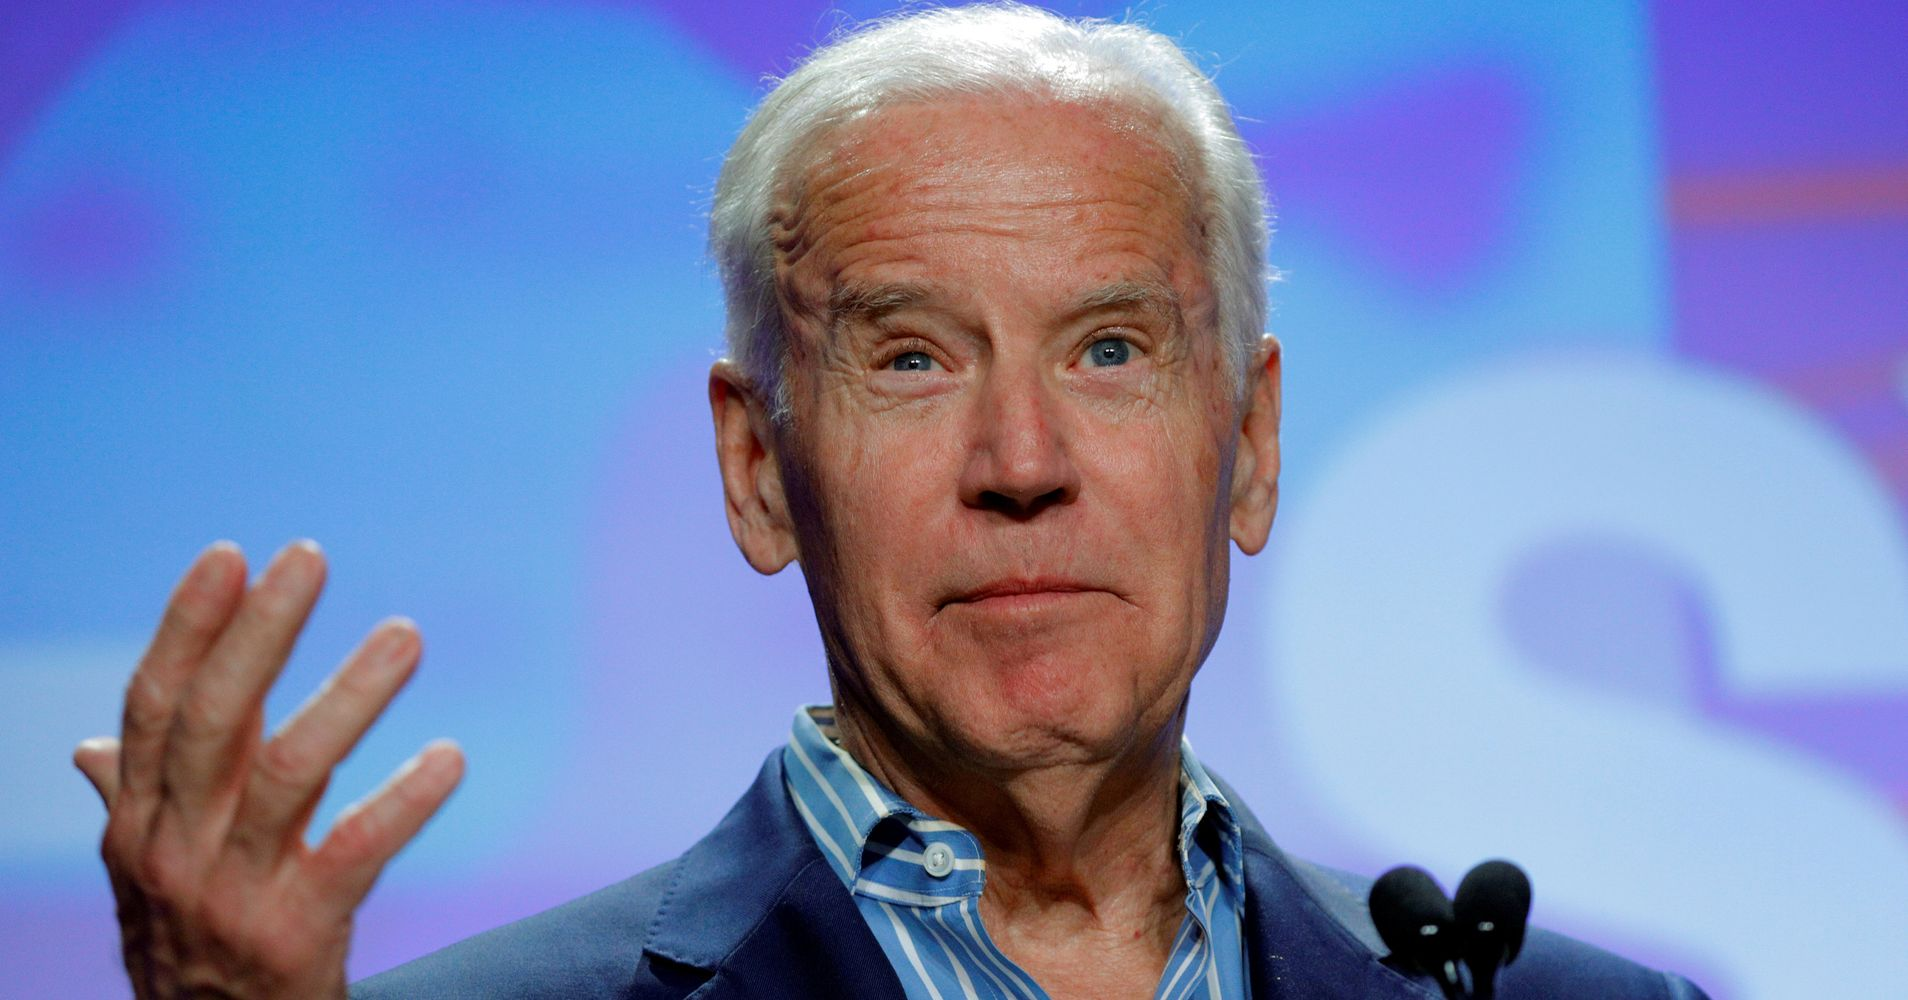 Biden Reportedly Slams Clinton: